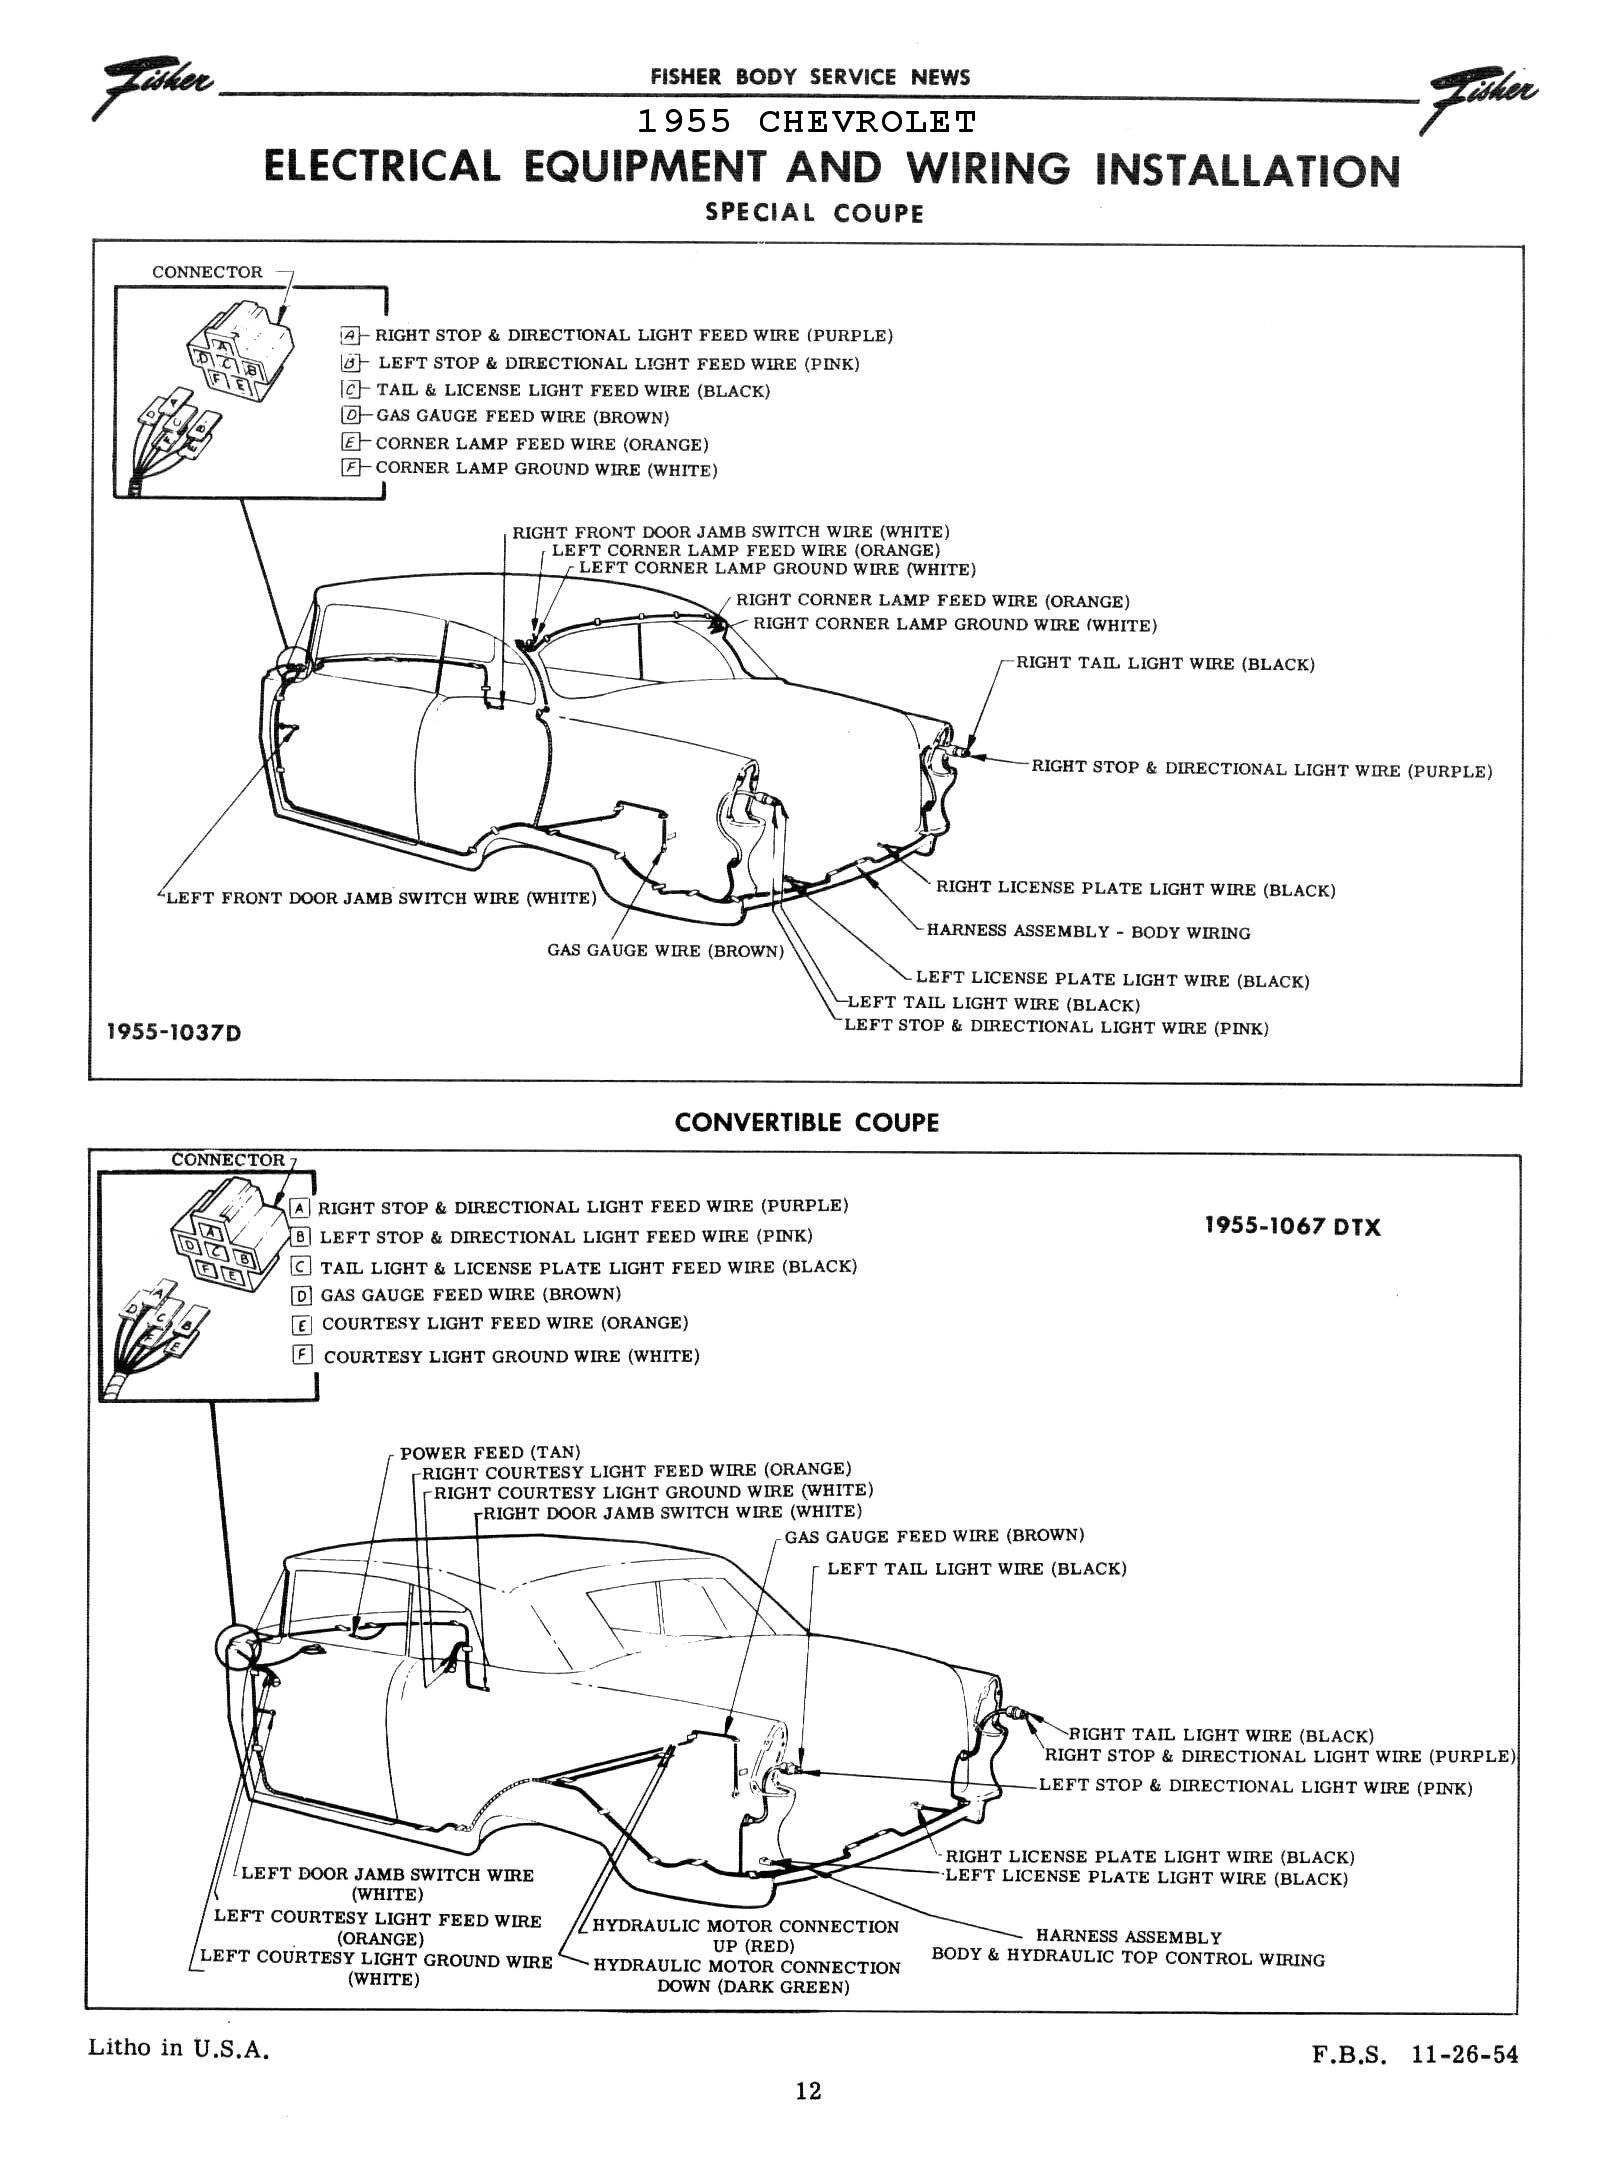 Chevy Wiring diagrams on chevrolet ignition switch, chevrolet owner's manual, chevrolet forum, chevrolet ignition wiring, chevrolet battery diagram, chevrolet fuel gauge wiring, chevrolet babes, chevrolet engine diagram, chevrolet cooling system, chevrolet gassers, chevrolet vacuum diagrams, chevrolet schematics, chevrolet exhaust diagram, chevrolet black reaper, chevrolet thermostat replacement, chevrolet key fob programming, chevrolet midnight edition, chevrolet remote control, chevrolet transmission diagram, chevrolet repair manual,